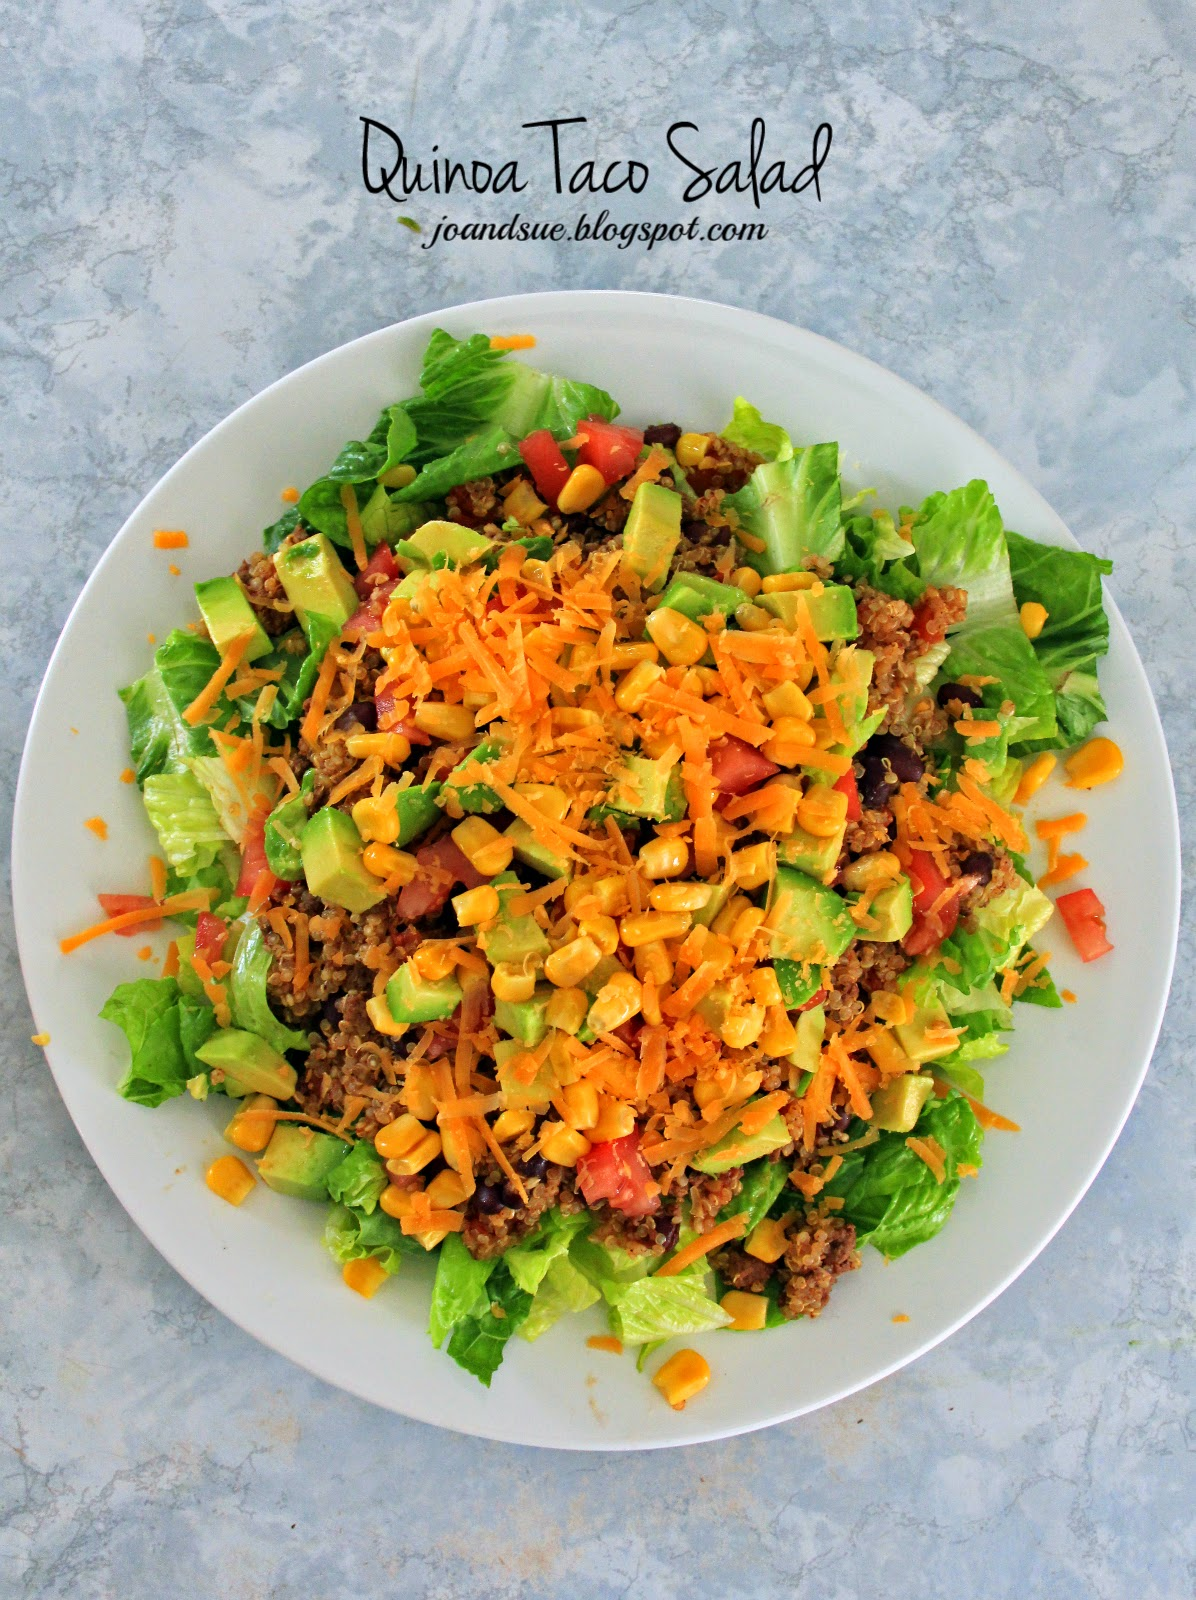 Jo and Sue: Quinoa Taco Salad